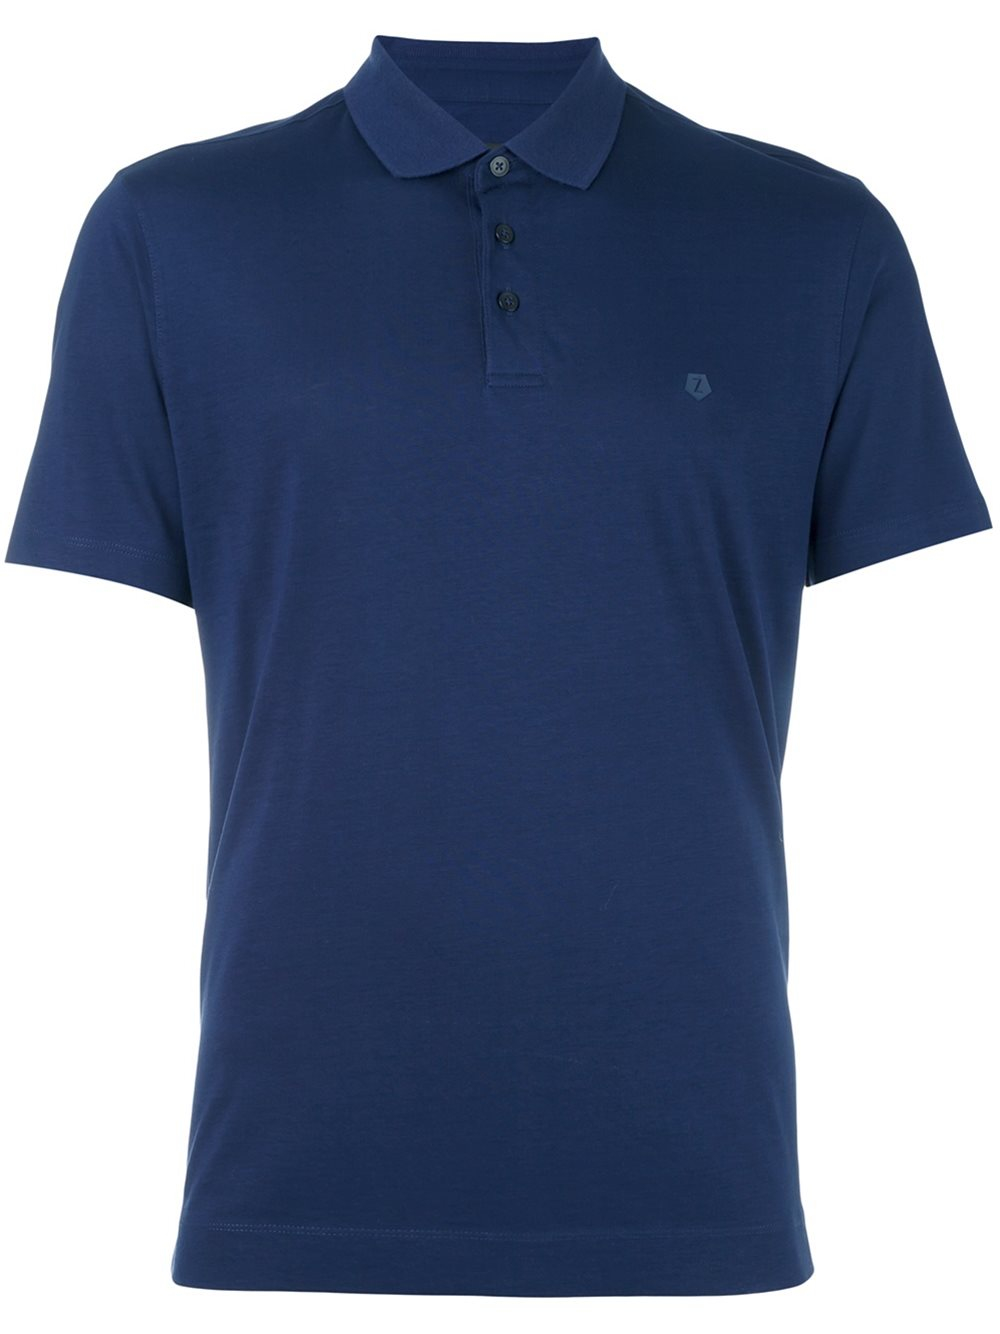 Z zegna classic polo shirt in blue for men lyst for Zegna polo shirts sale